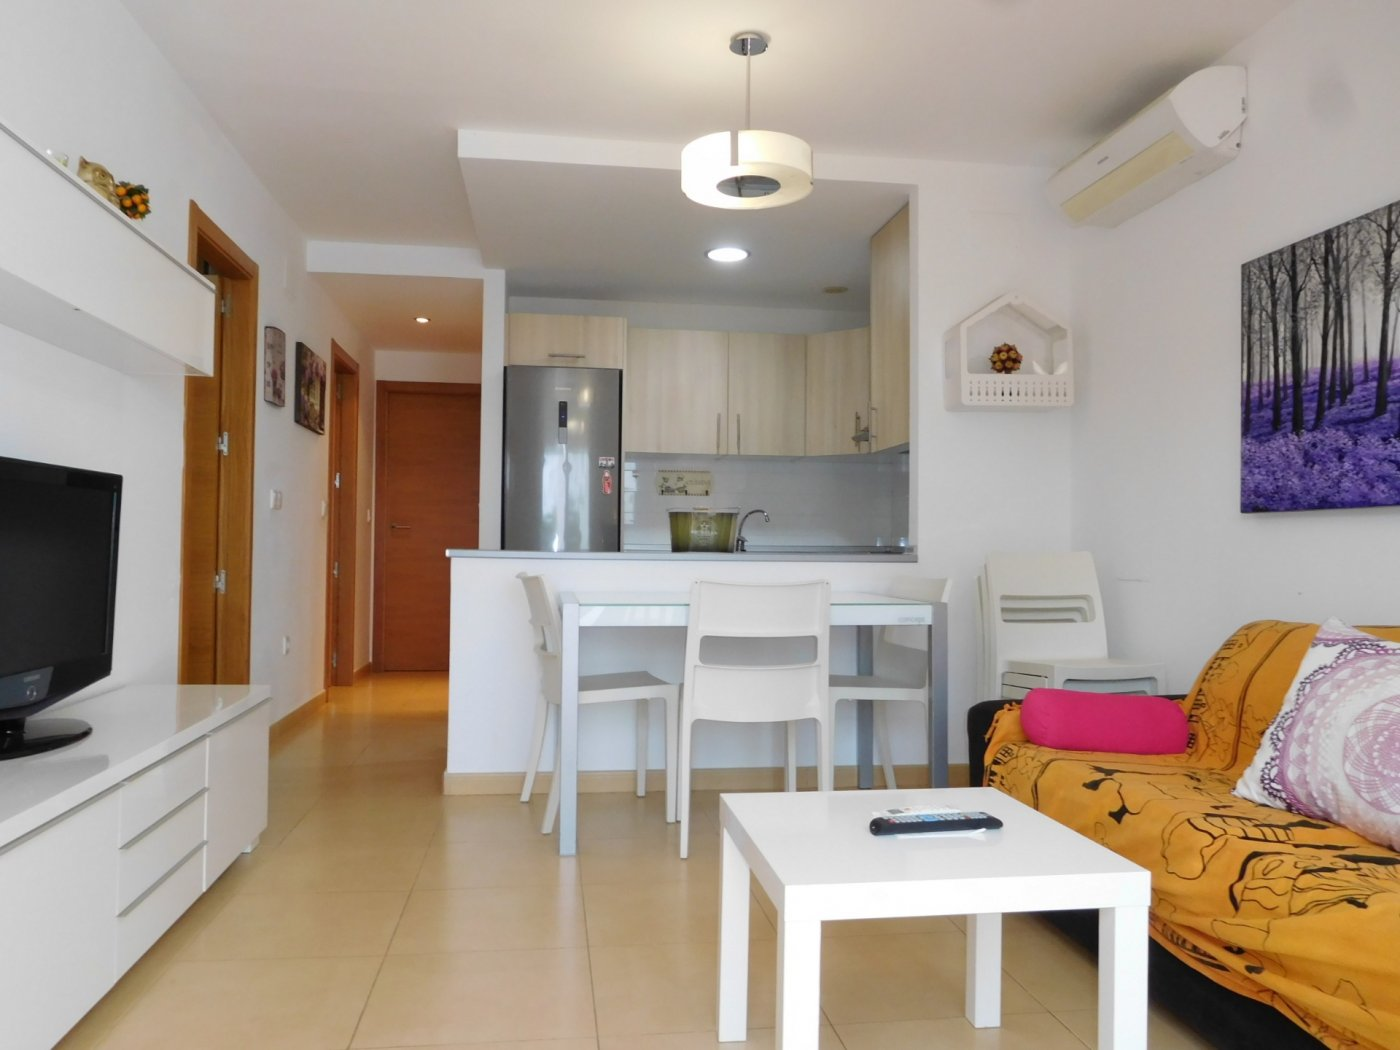 Apartment ref 3265-03013 for rent in Condado De Alhama Spain - Quality Homes Costa Cálida